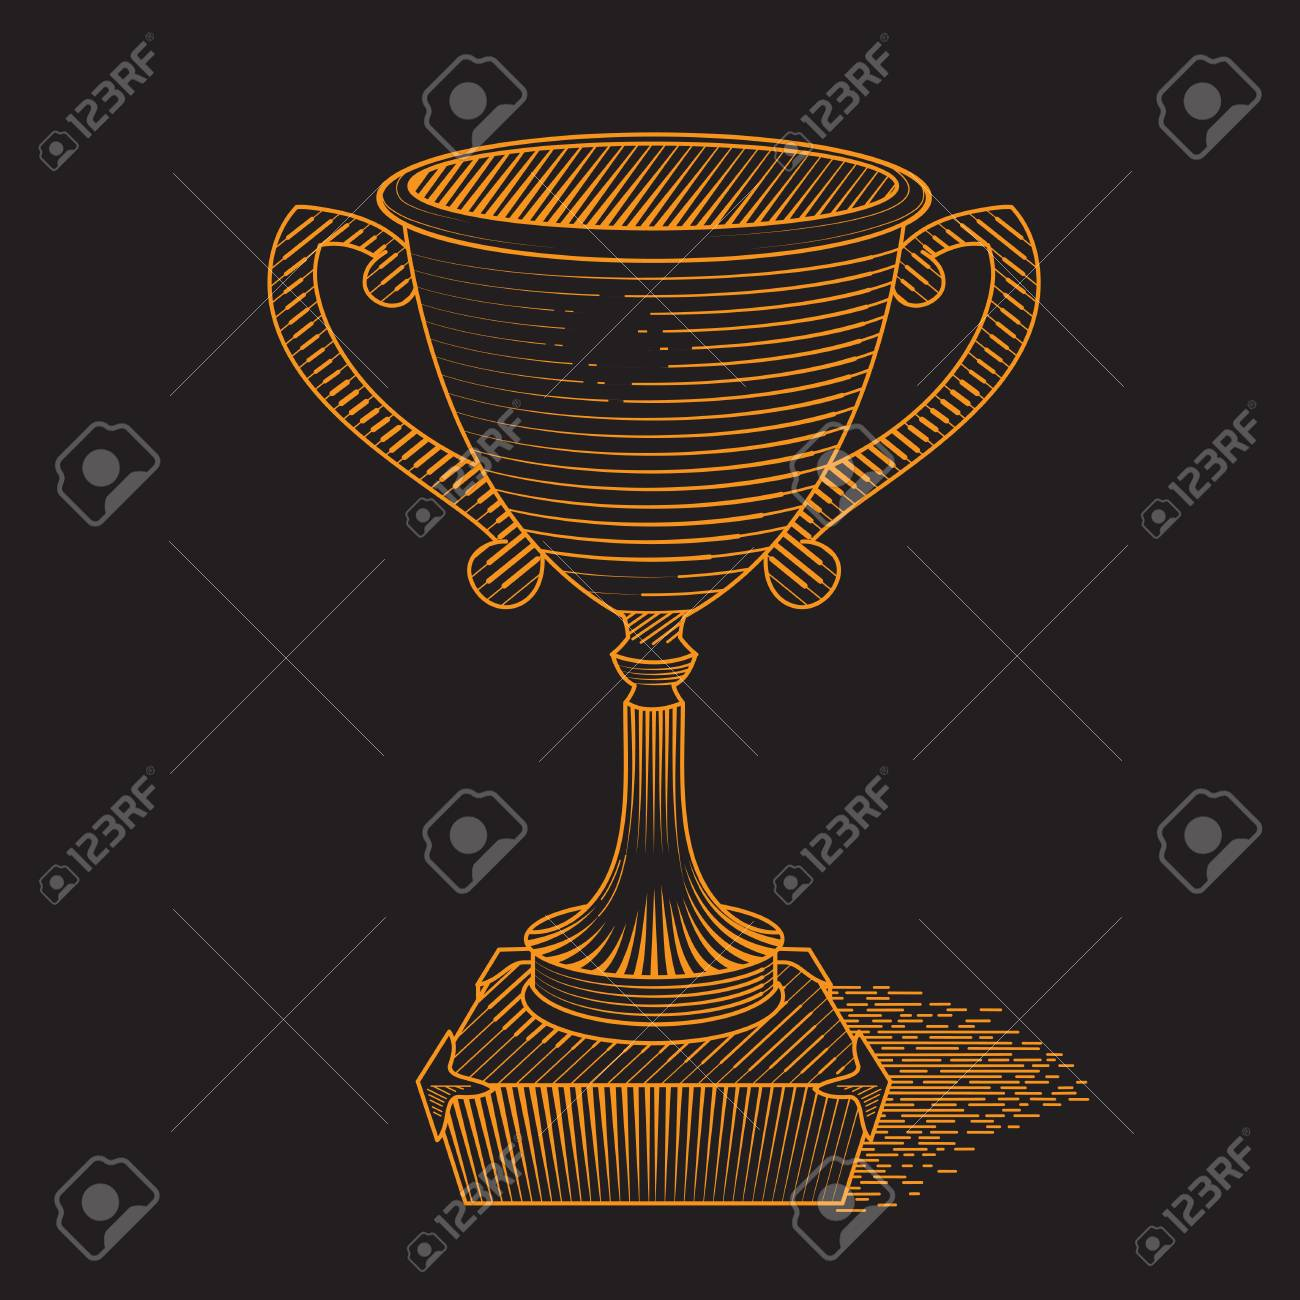 Metallic Trophy Cup First Place Winner Award Icon Of Gold Champions Illustration On